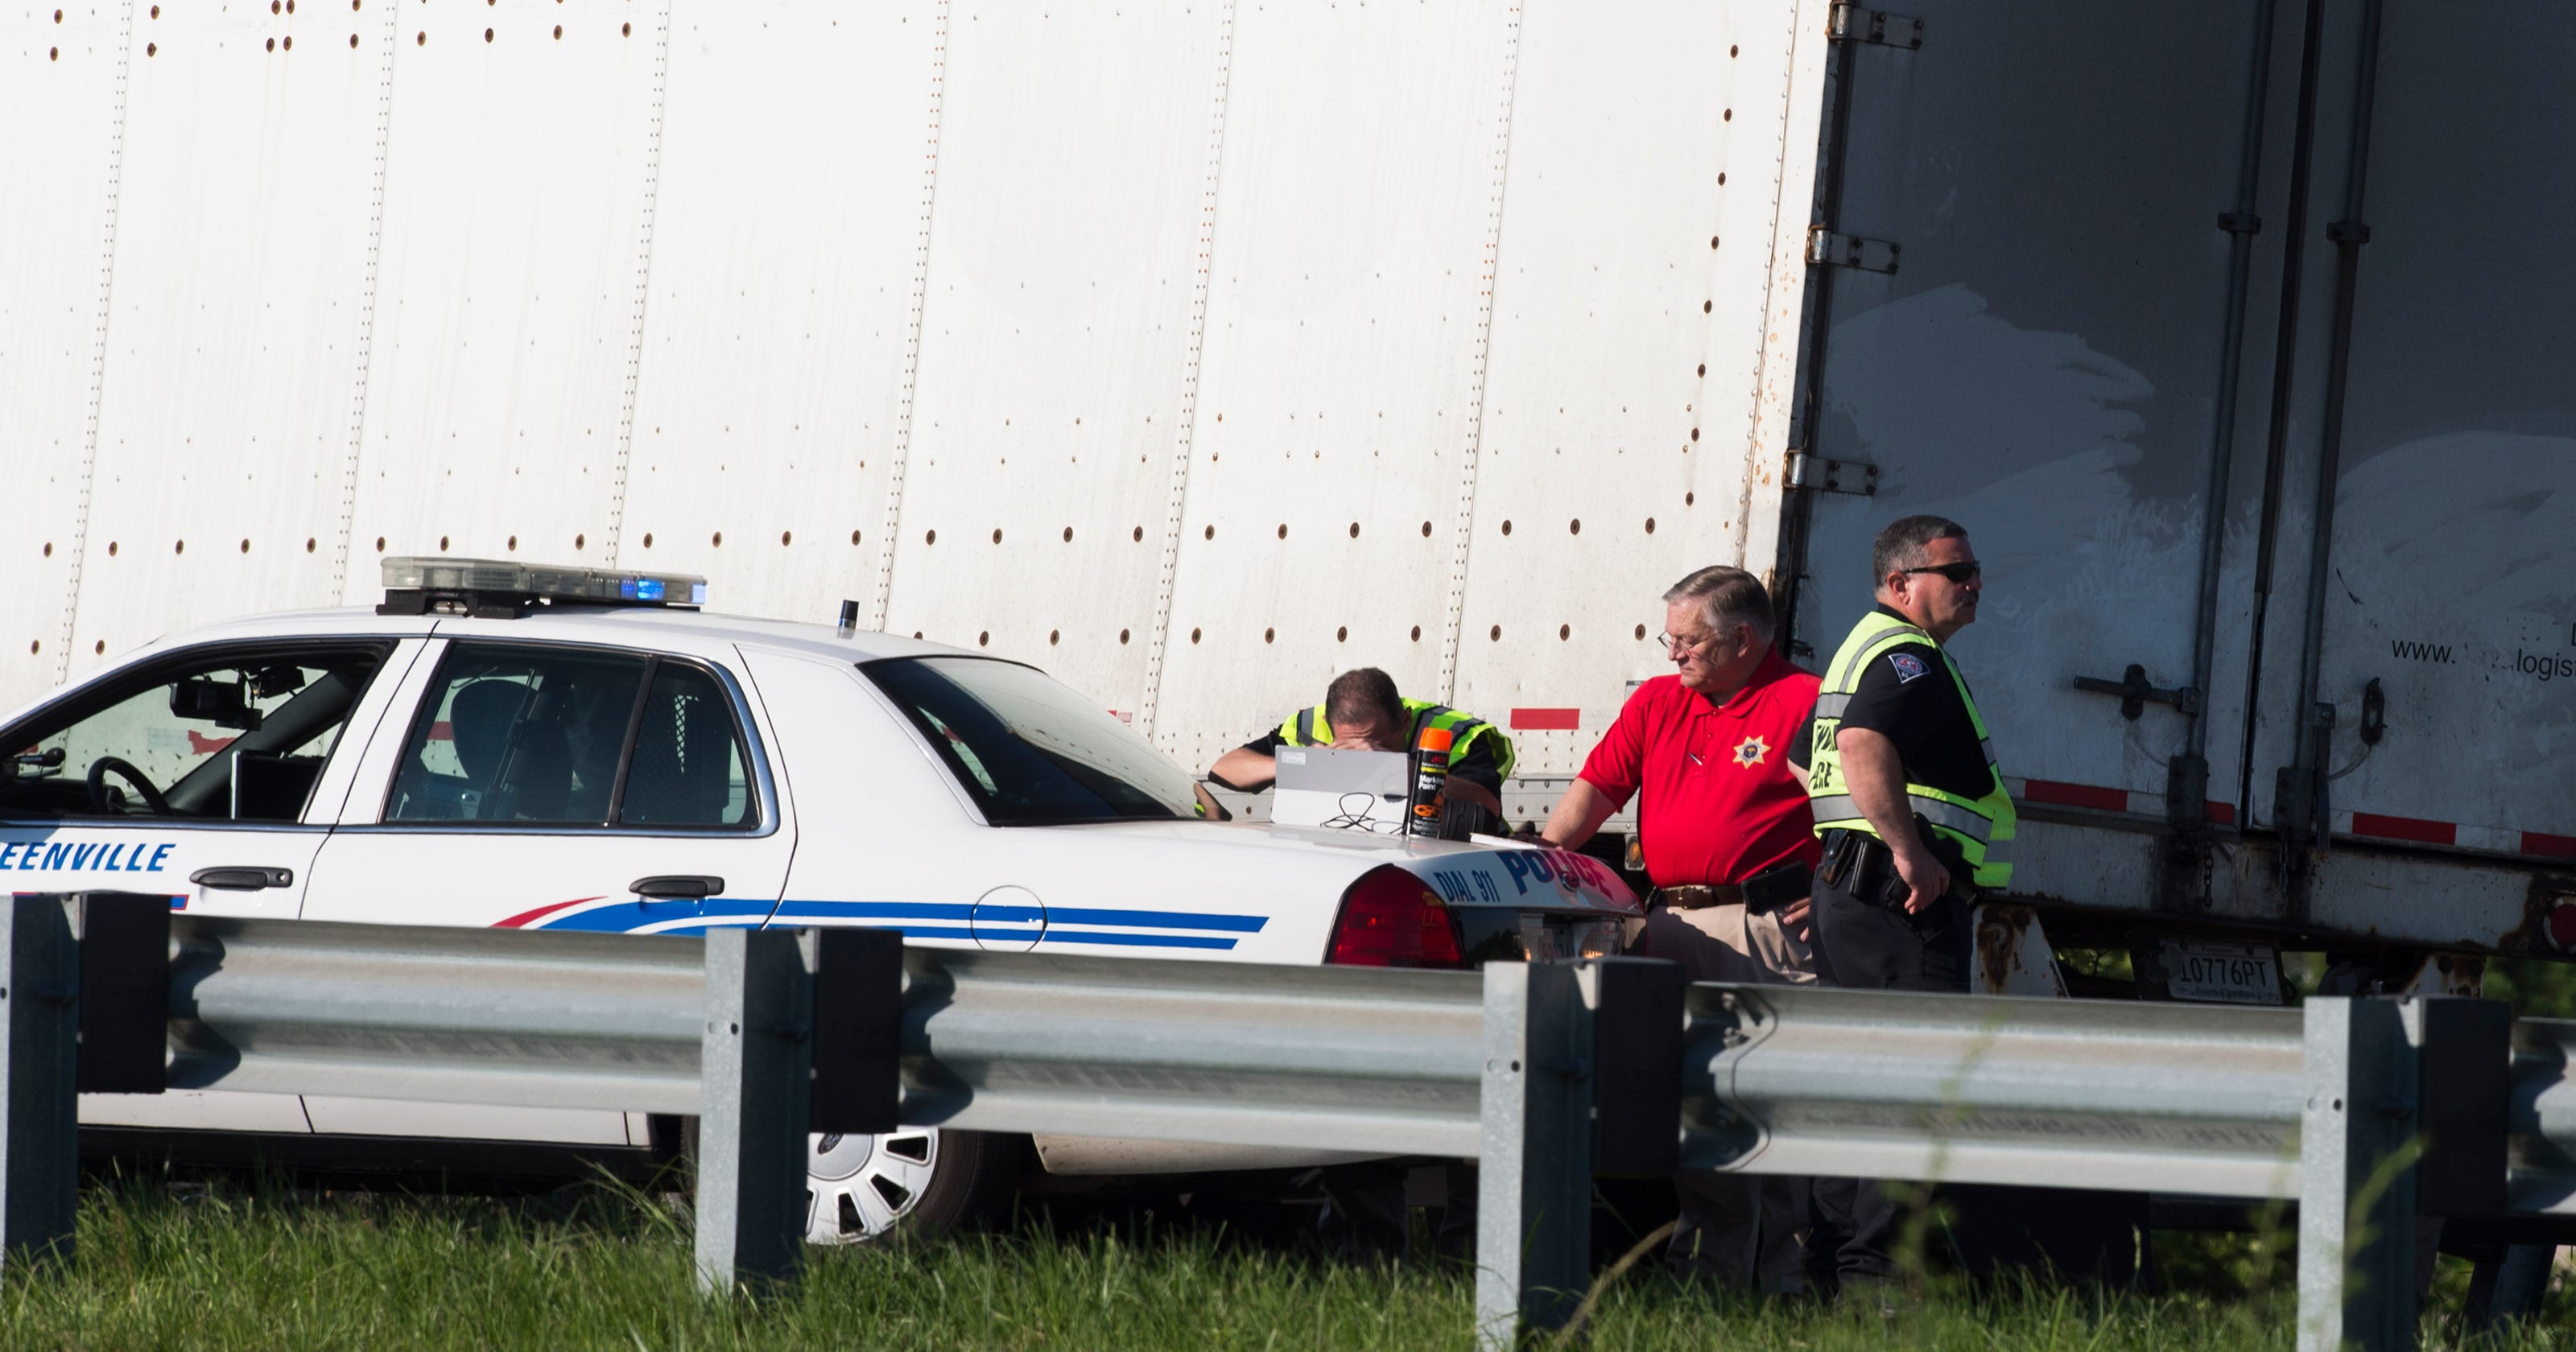 Coroner IDs one in morning wreck on I-385